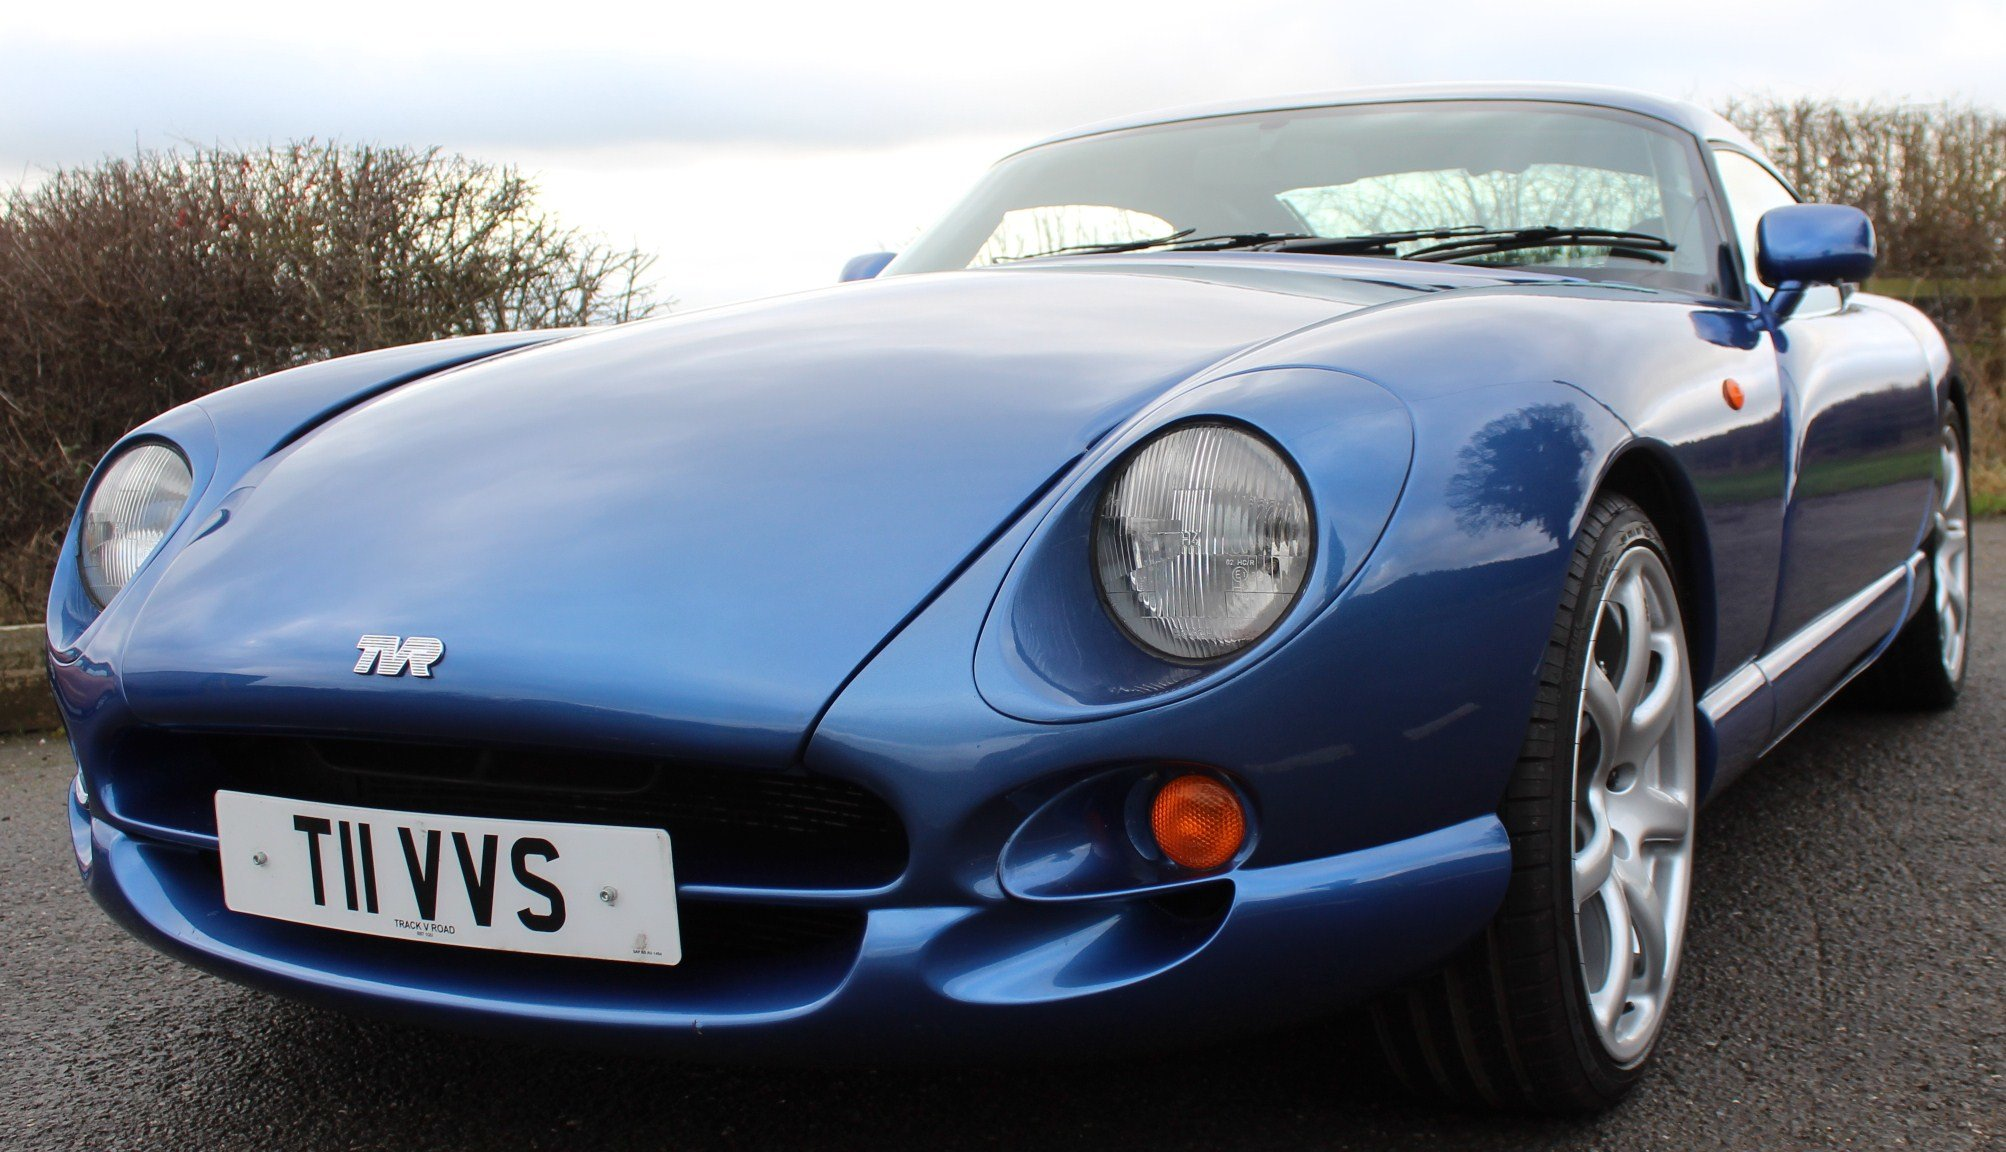 1999 TVR Cerbera 4.0 Litre Super Six 33,000 miles FSH SOLD (picture 1 of 6)